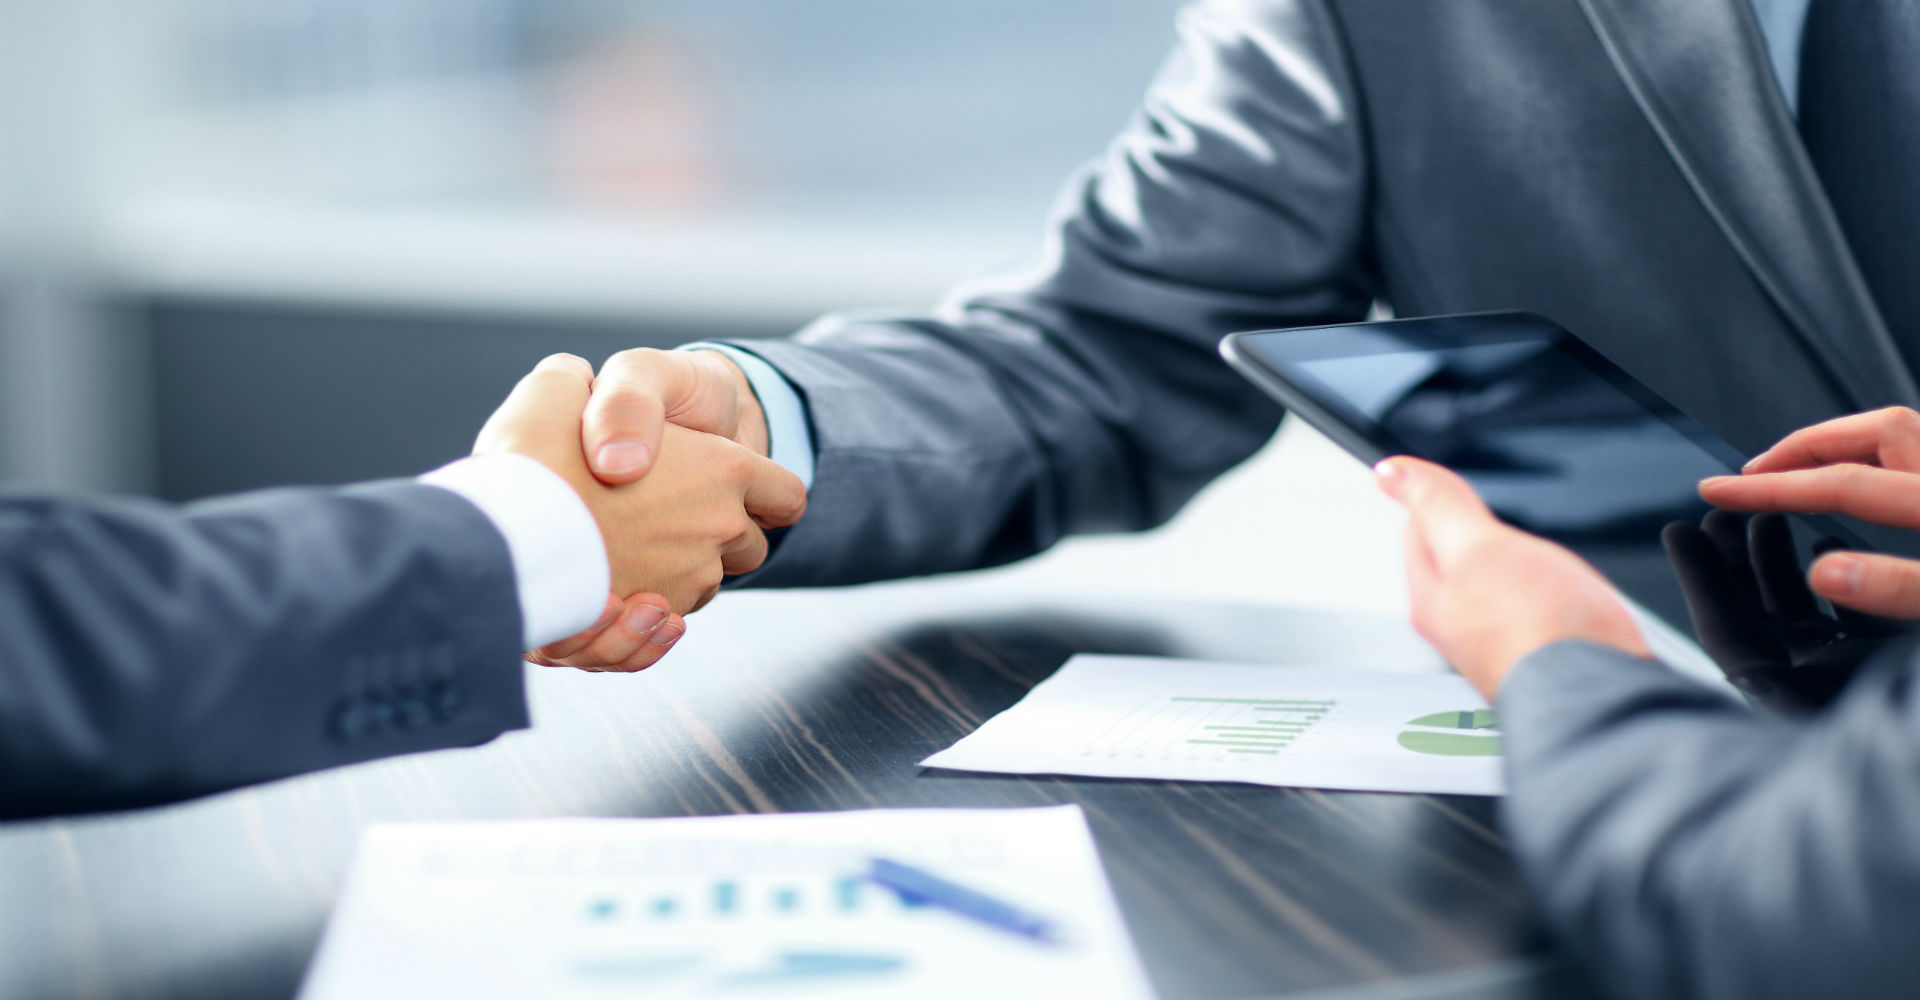 Leadership - Developing a Mergers and Acquisitions IT Integration Plan